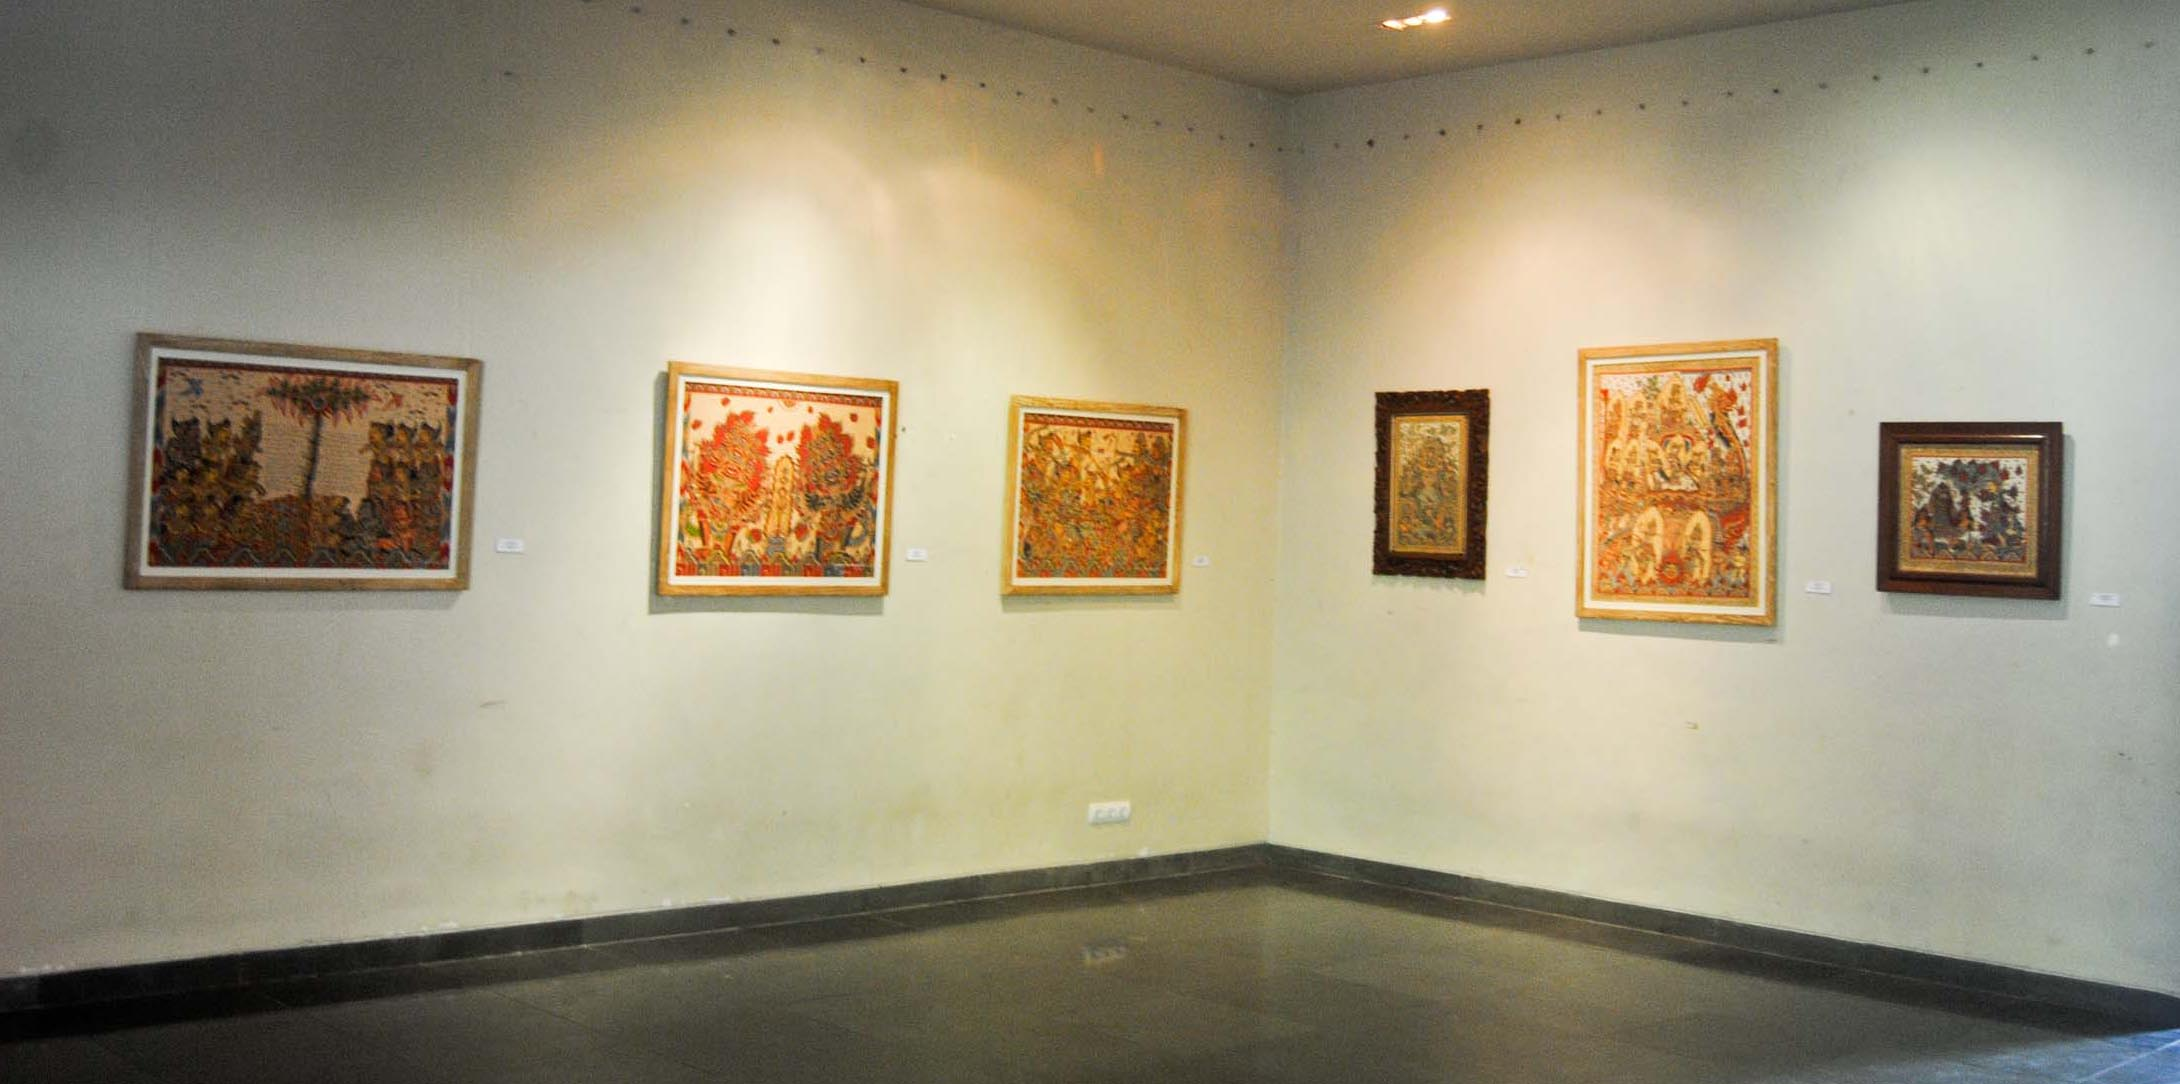 The Sanggar Seniwati is the Association of Women Artists, established due to the discrimination to